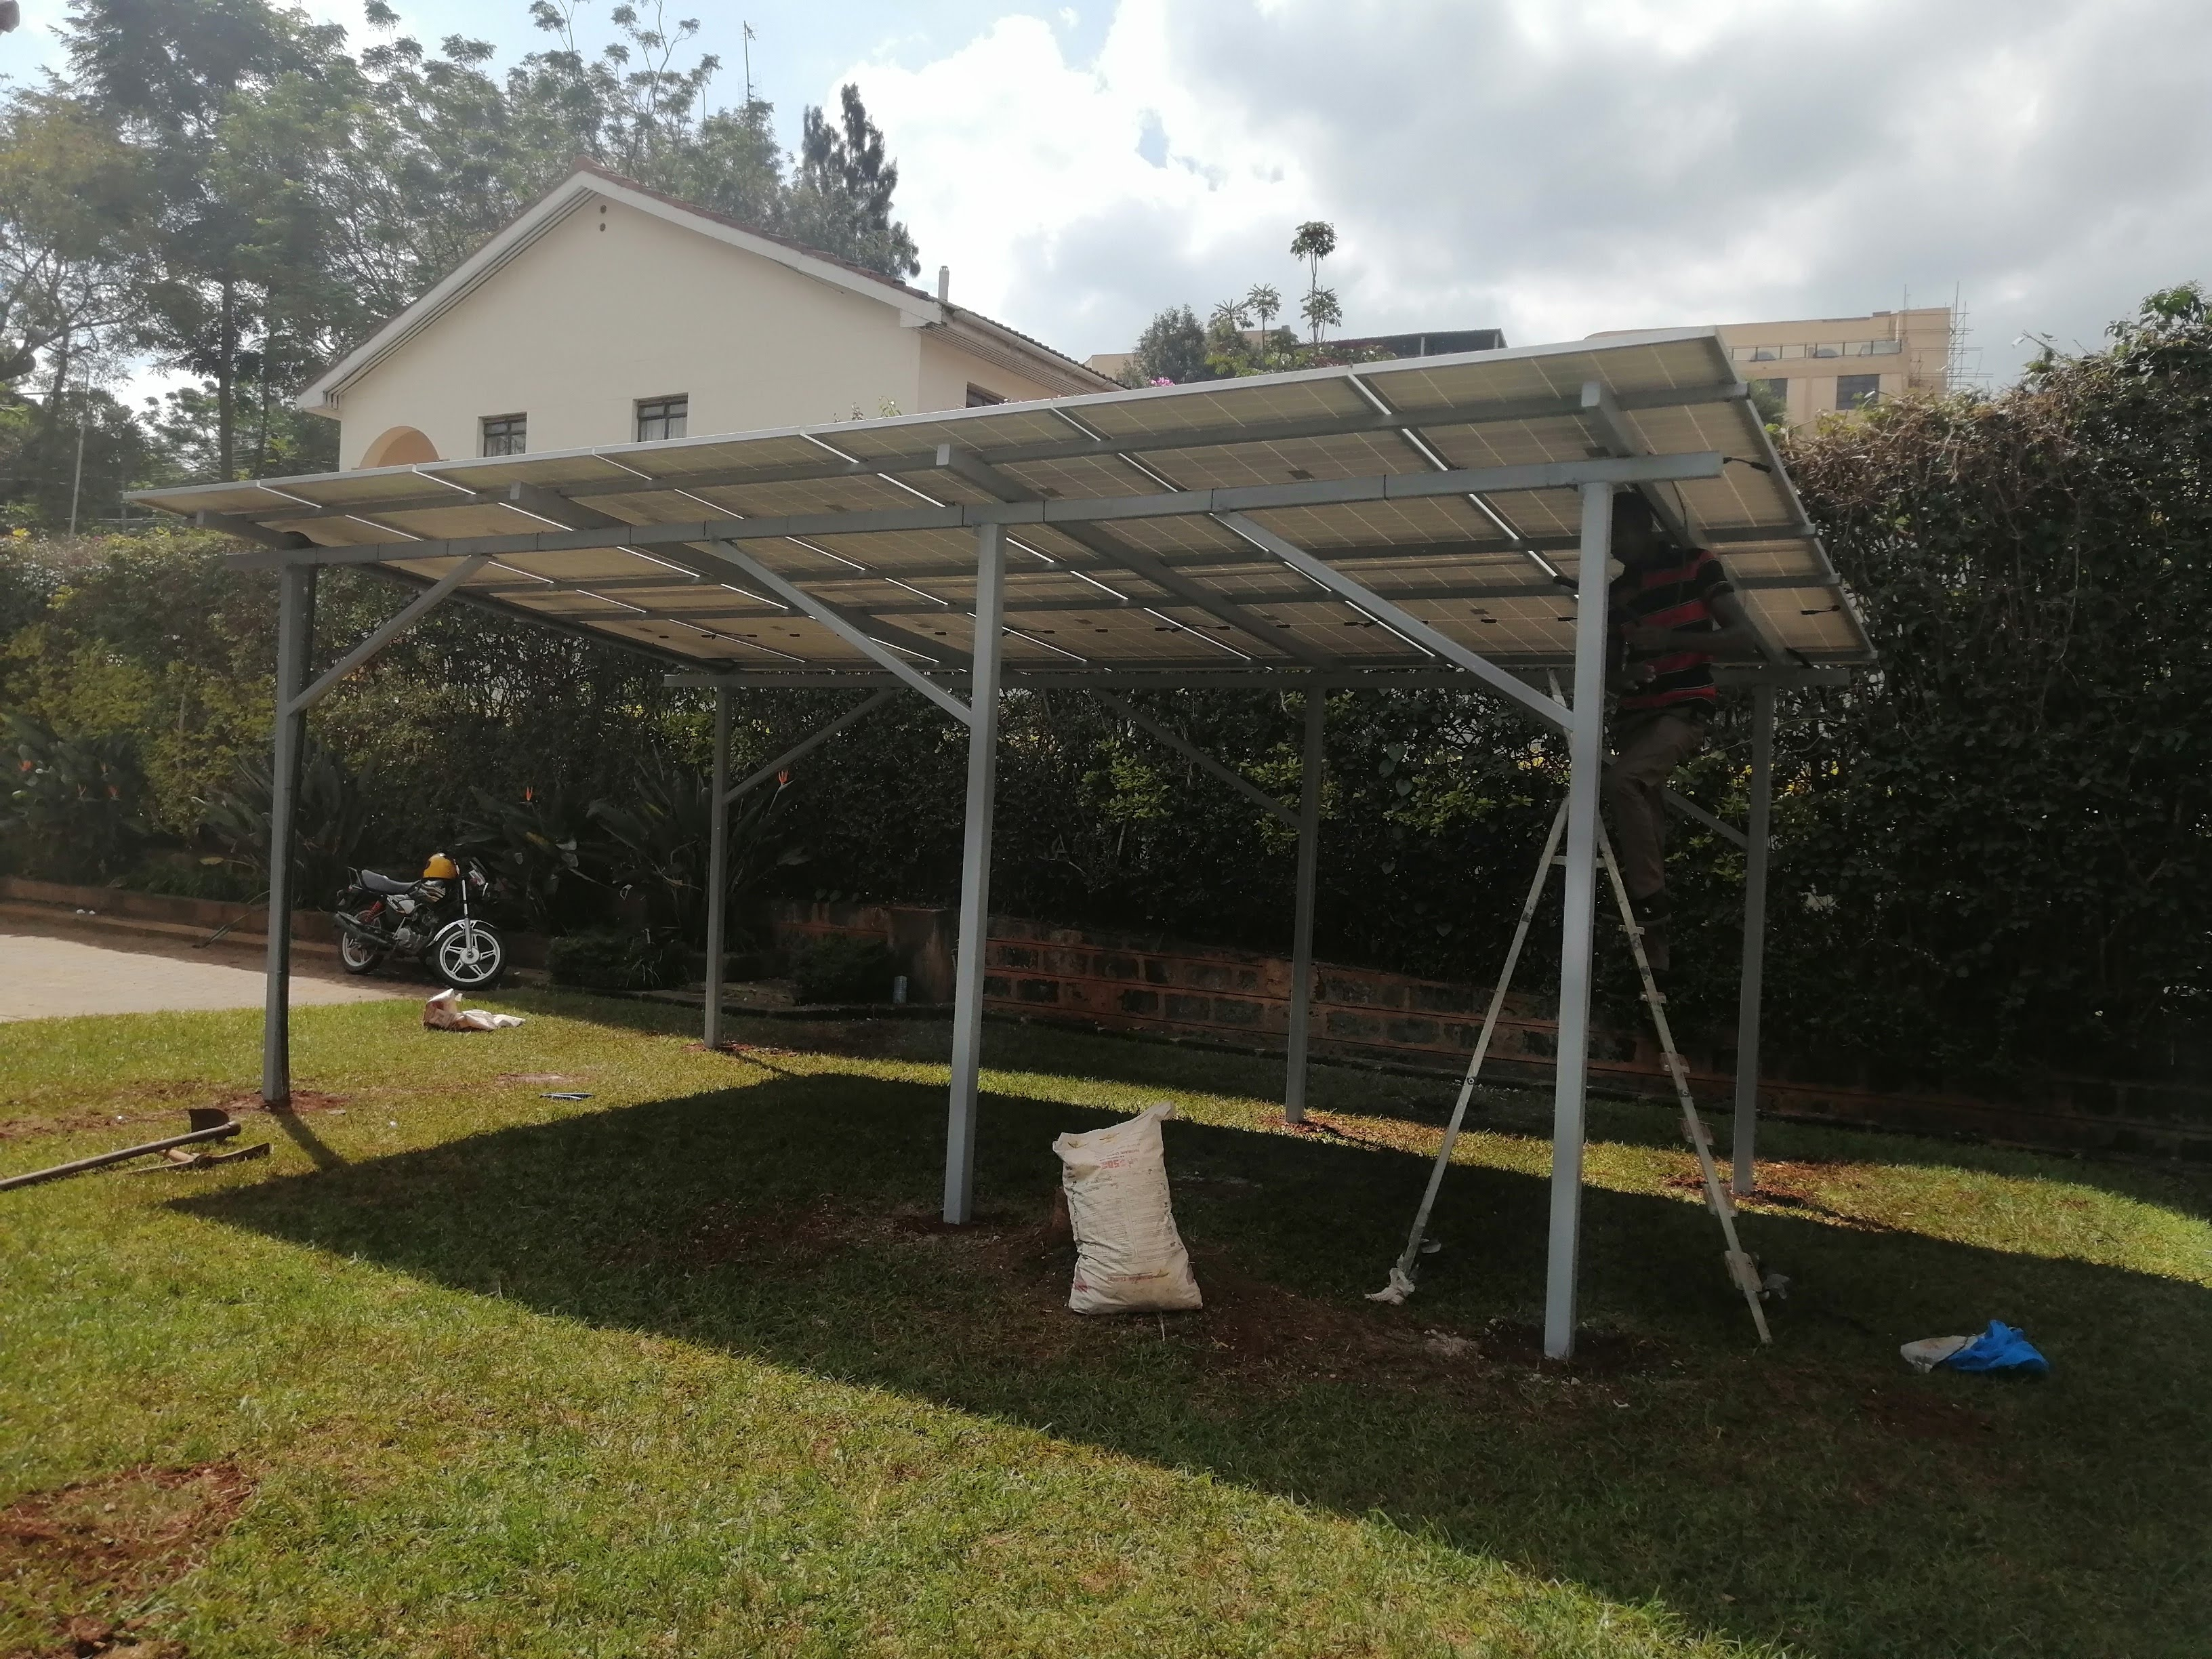 Solar systems and energy storage for reliable, affordable home power supply